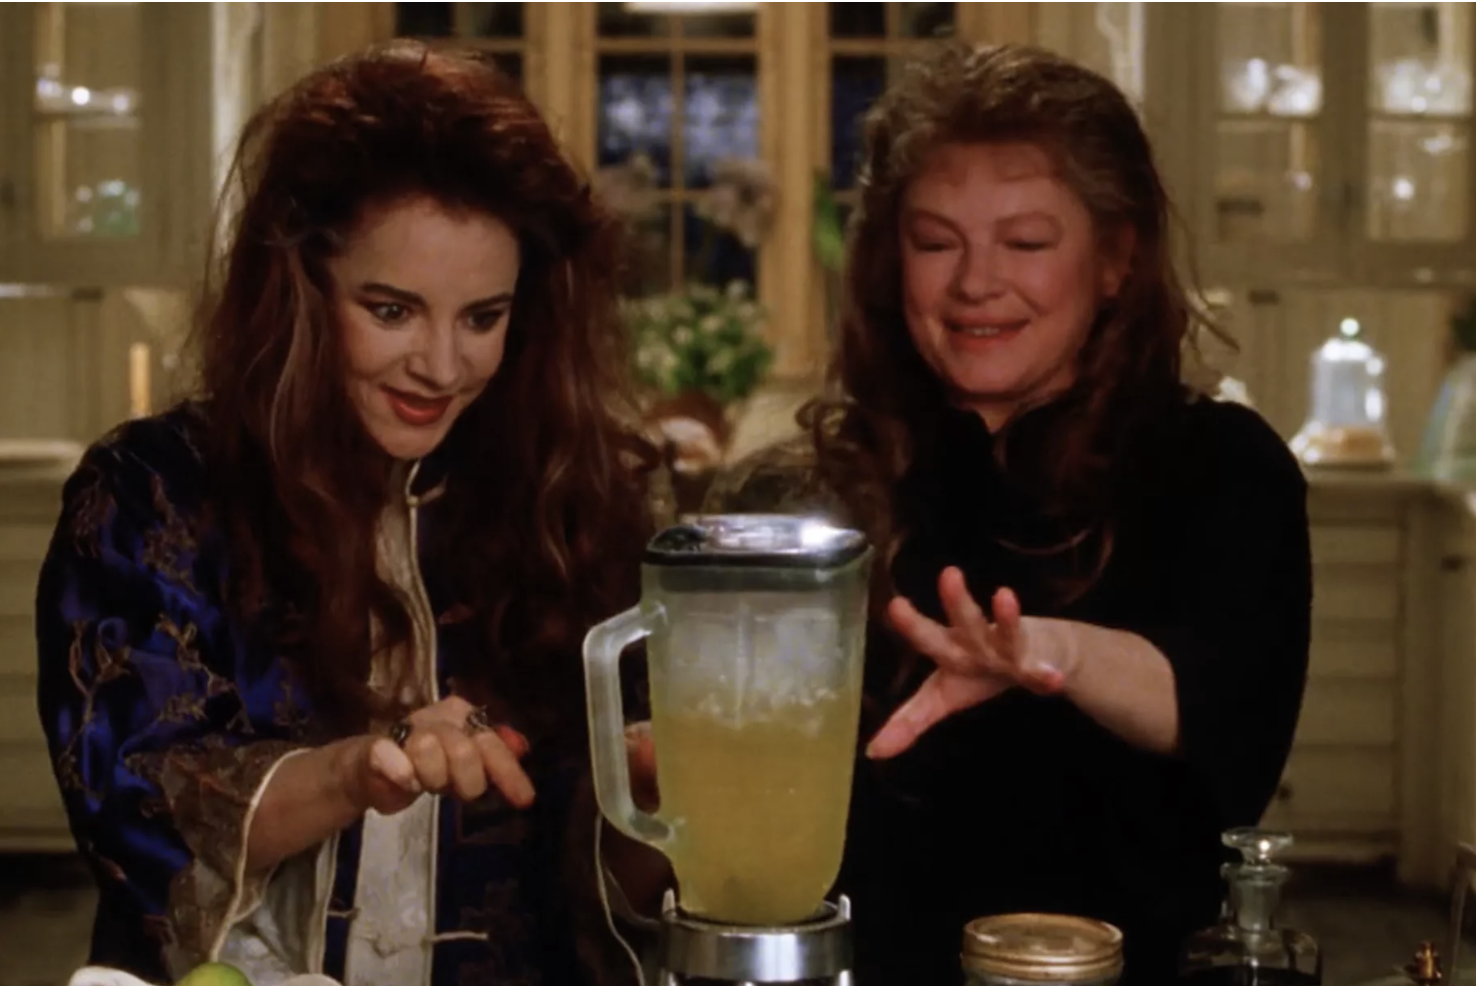 Channing and Weist smile while blending up margaritas